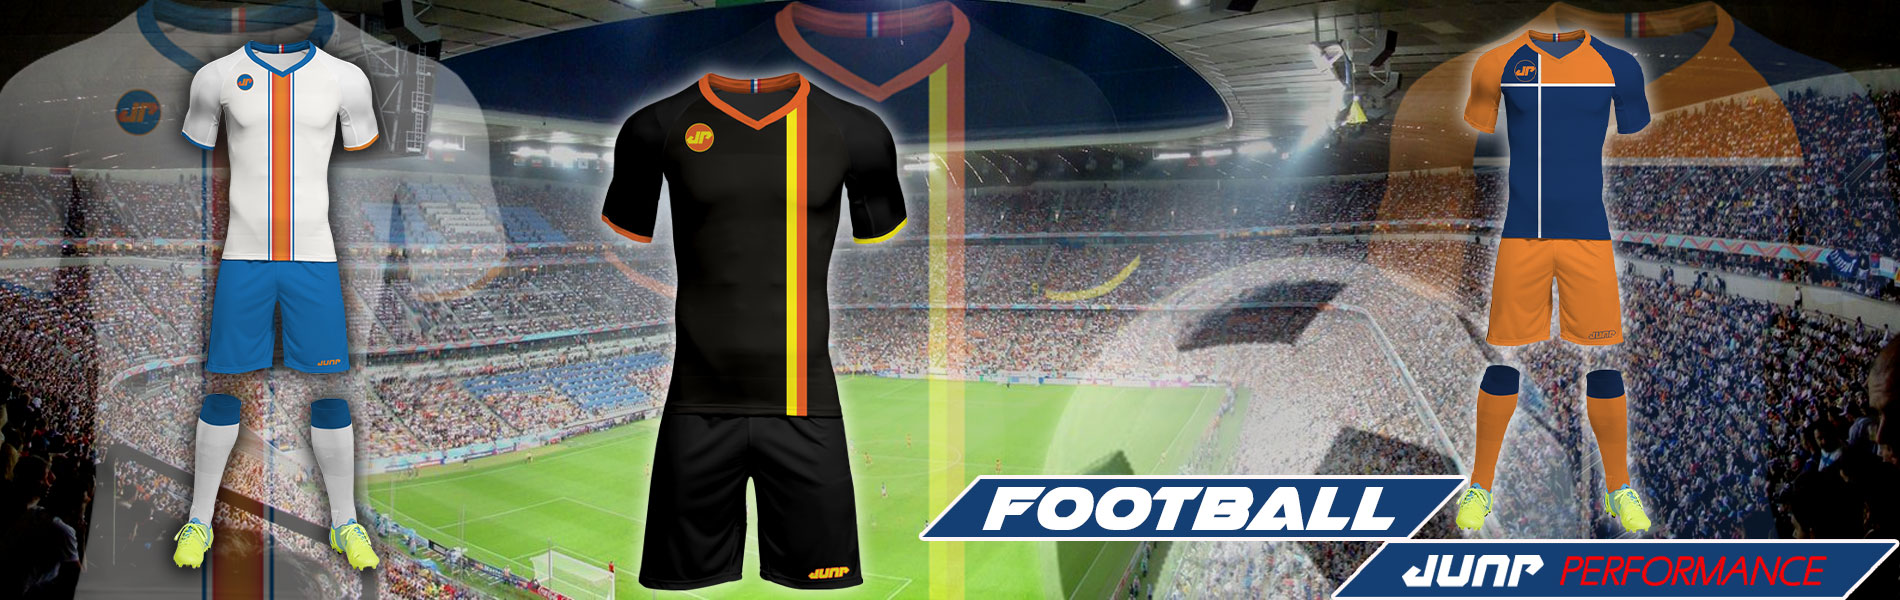 tenue maillot foot football personnalise jump performance industries